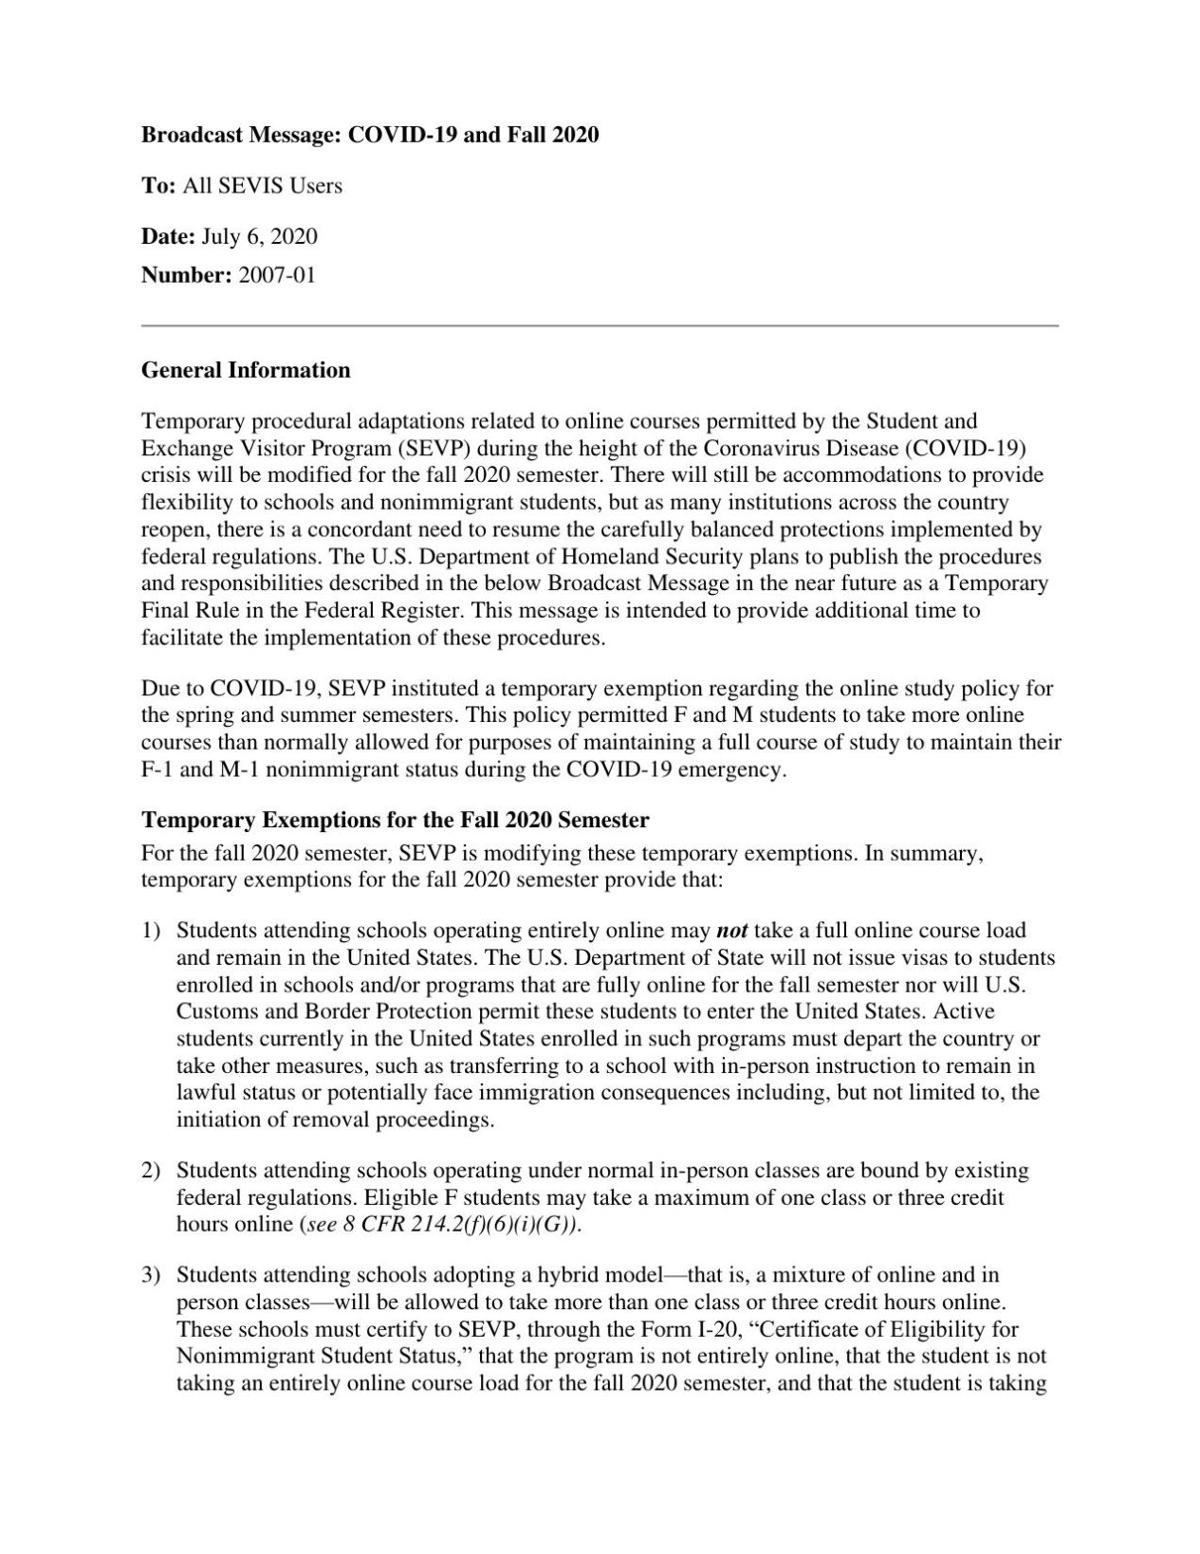 The SEVP guidelines on foreign students